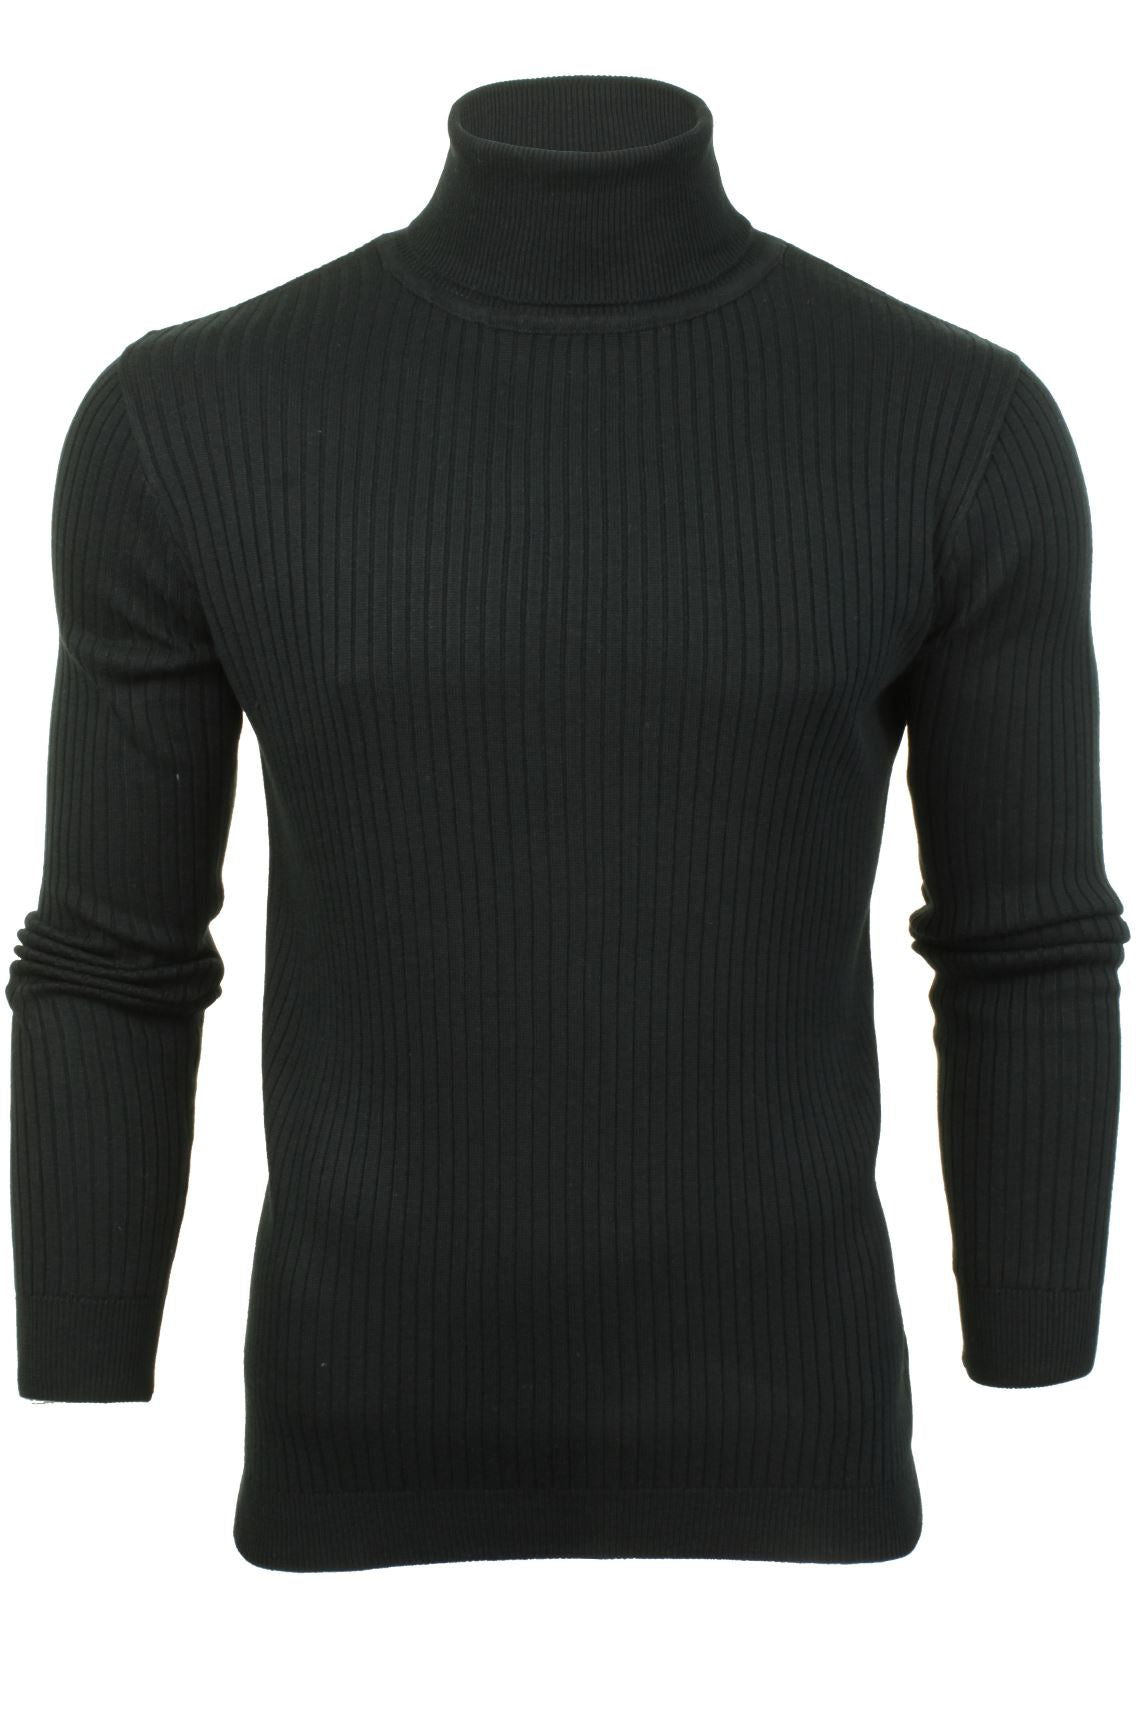 Mens Roll-Neck Jumper by Brave Soul 'Rally' All Over Rib-Main Image